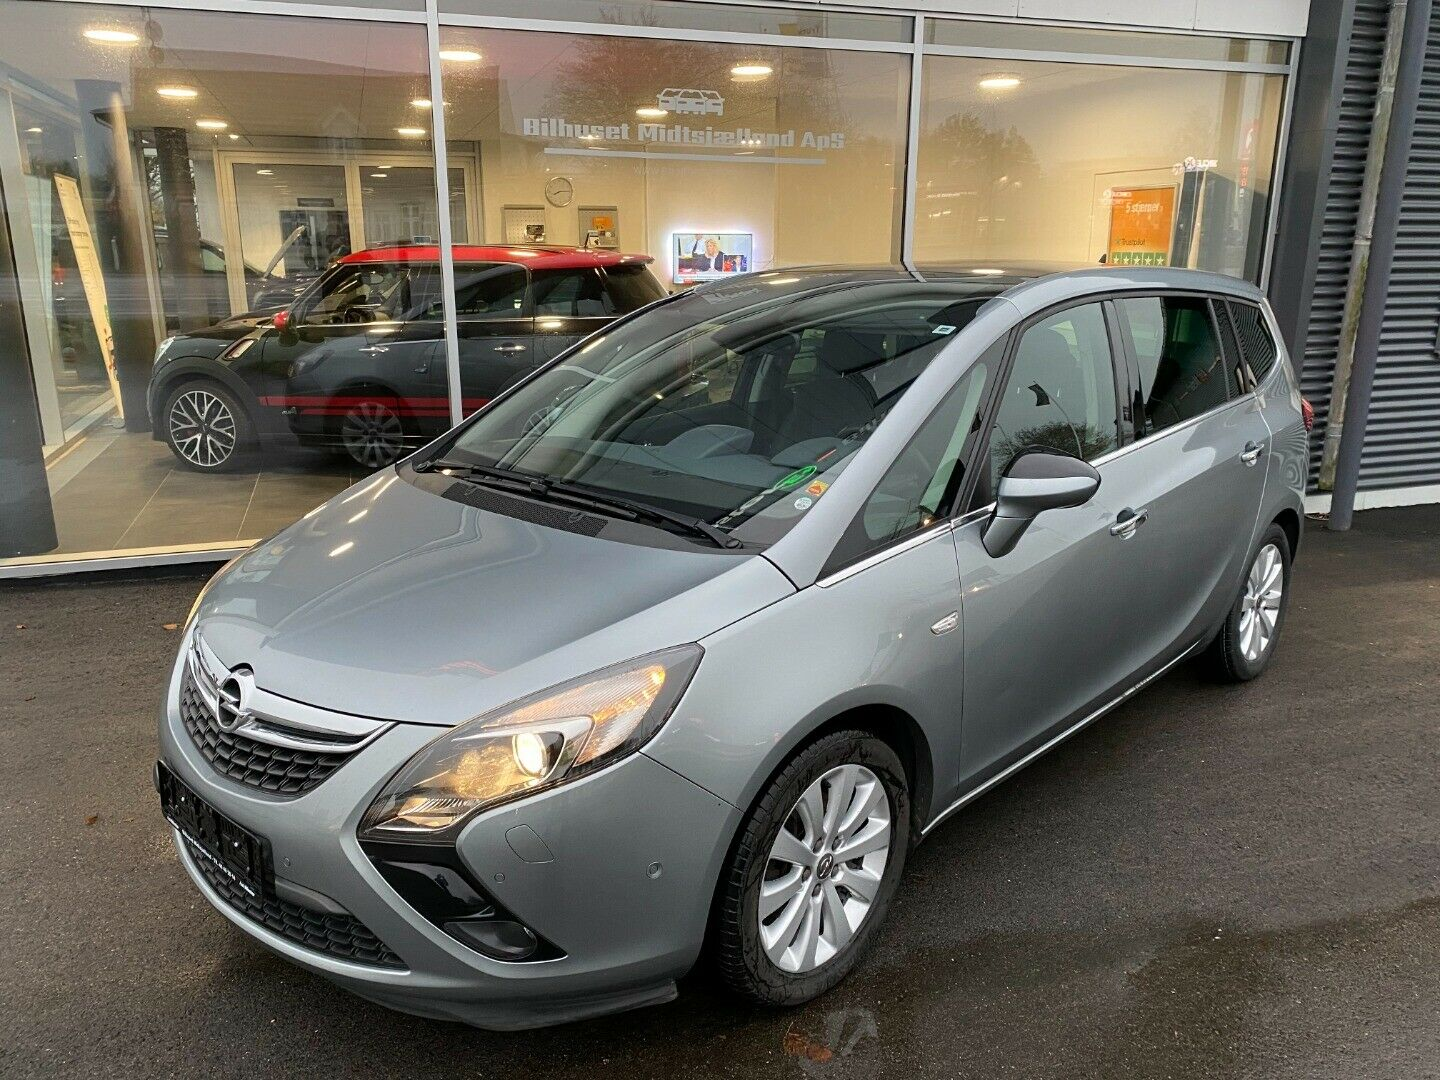 Opel Zafira Tourer 1,4 T 140 Cosmo eco 5d - 139.900 kr.